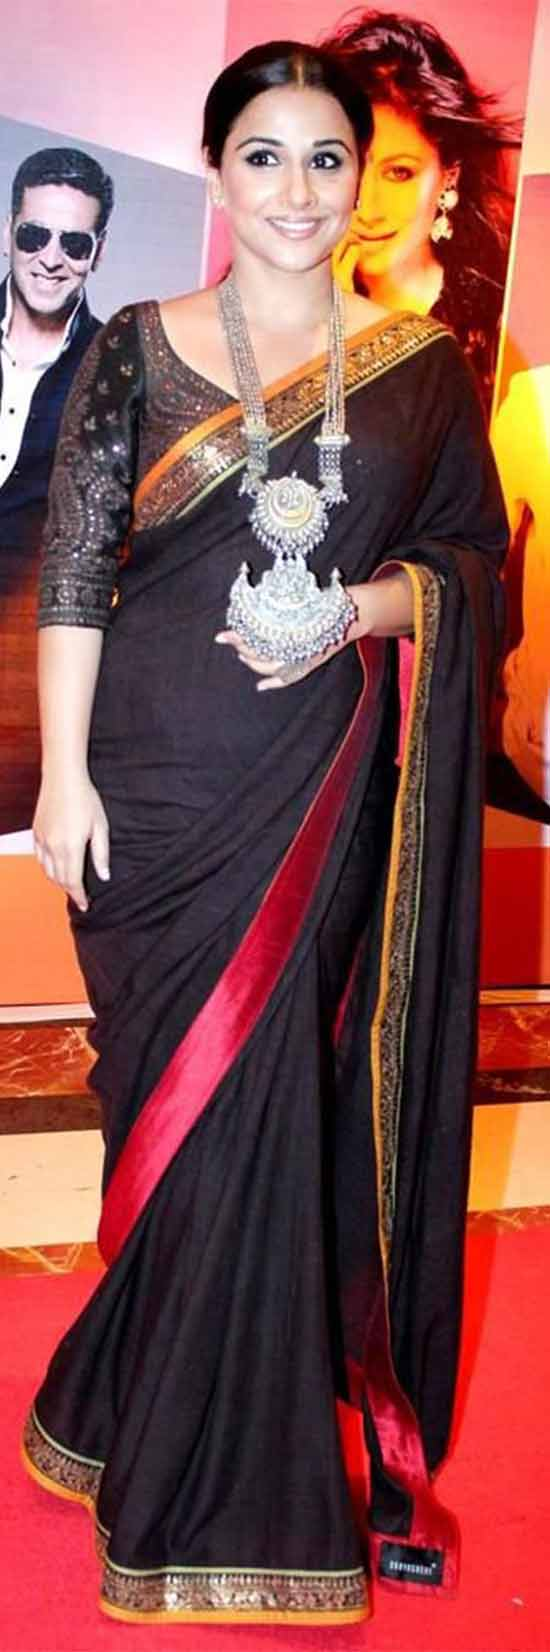 Vidya-Balan-in-Black-Zari-Border-Saree-With-Designer-Blouse